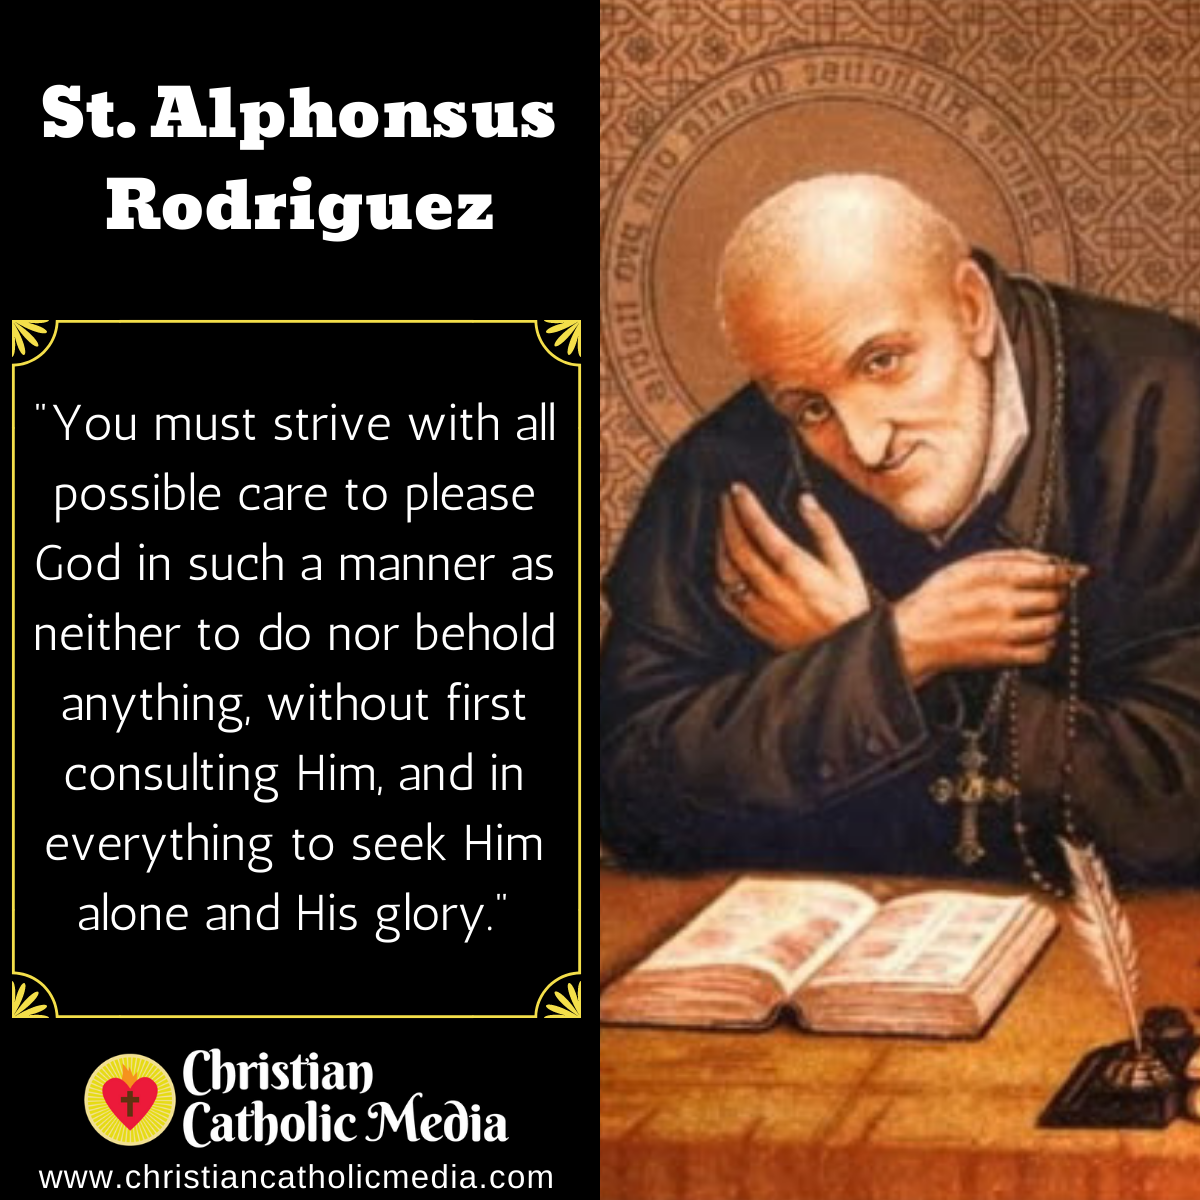 St. Alphonsus Rodriguez - Friday October 30, 2020